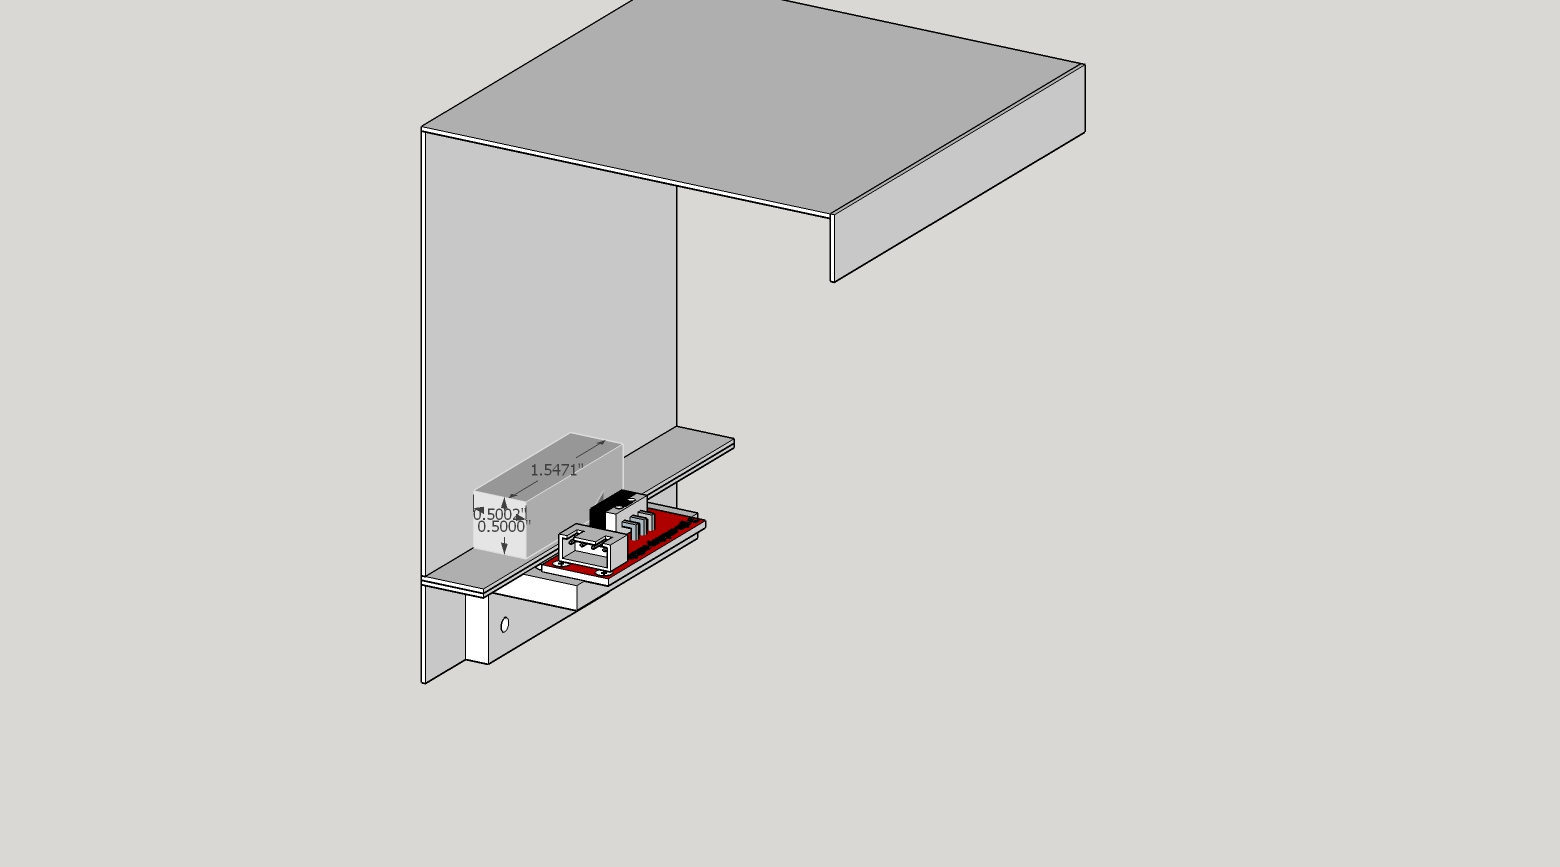 Dons Laser Cutter Things K40 S Interlocks Breakout Board Defeat Switch Loop Wiring Diagram This Arrangement Also Allows A Magnet To Be Placed On The Ledge I Dont Recommend Defeating Make Sure You Wear Eye